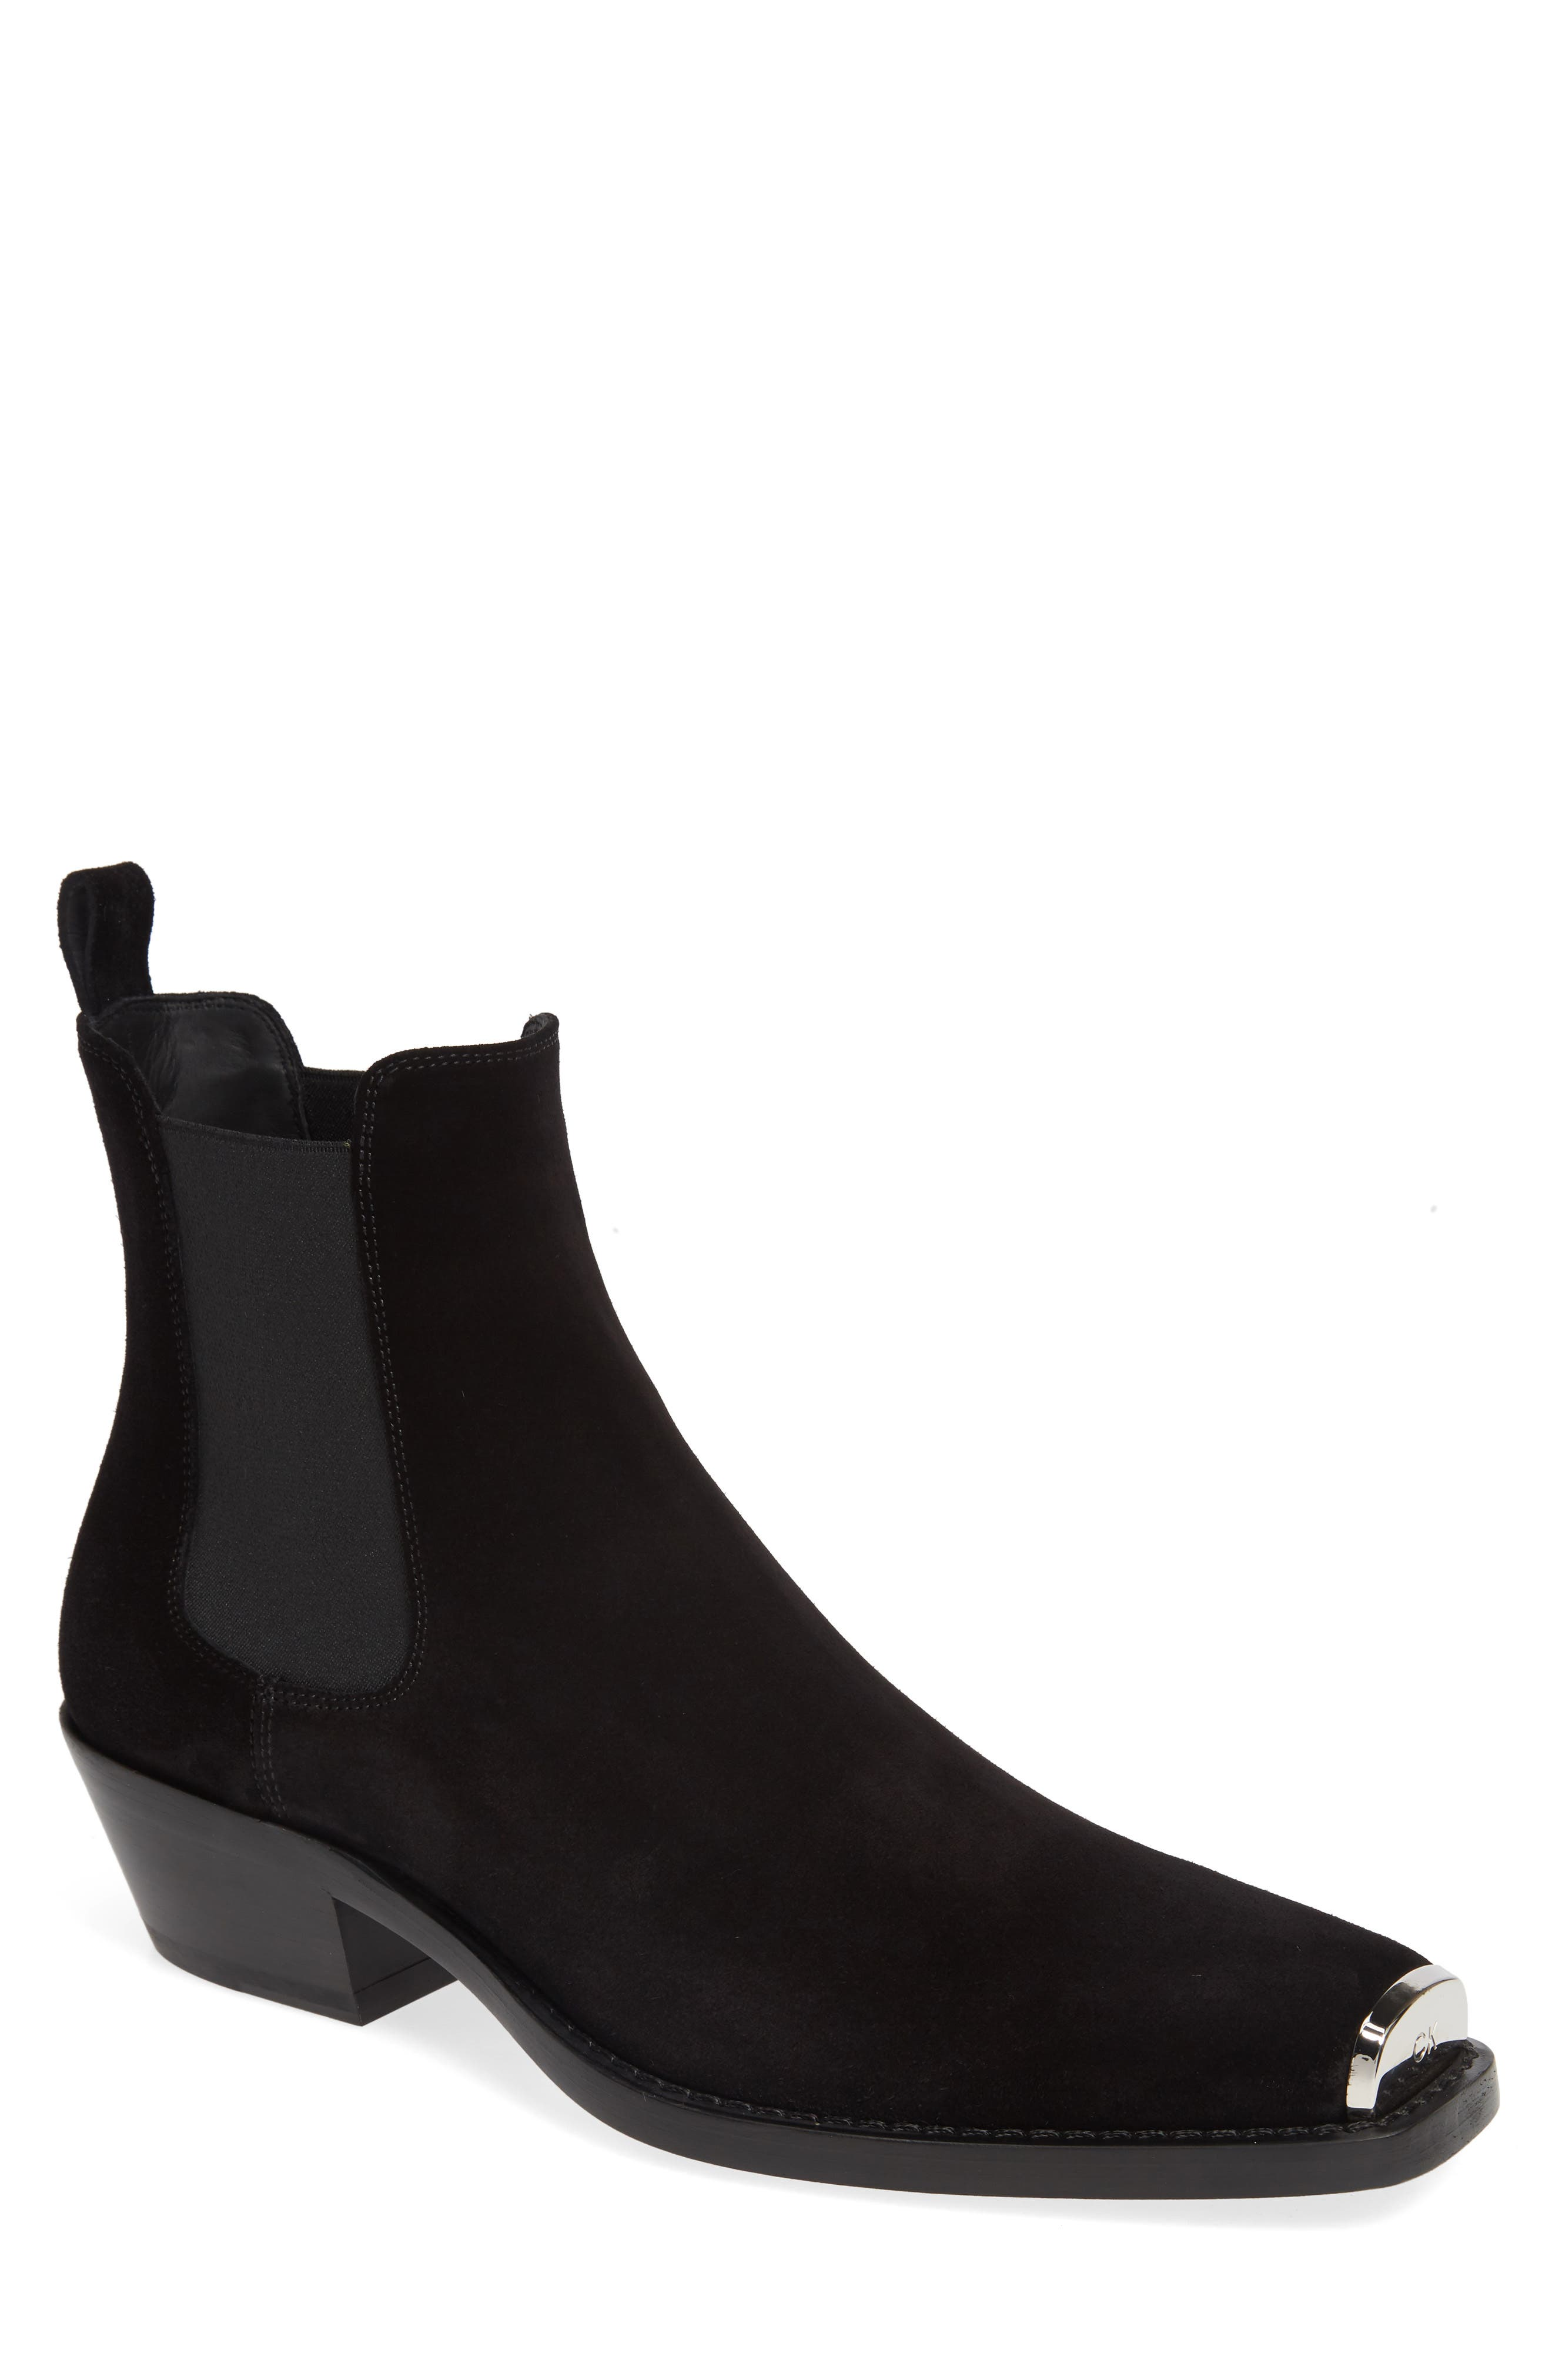 CALVIN KLEIN 205W39NYC Chris Chelsea Boot, Main, color, BLACK